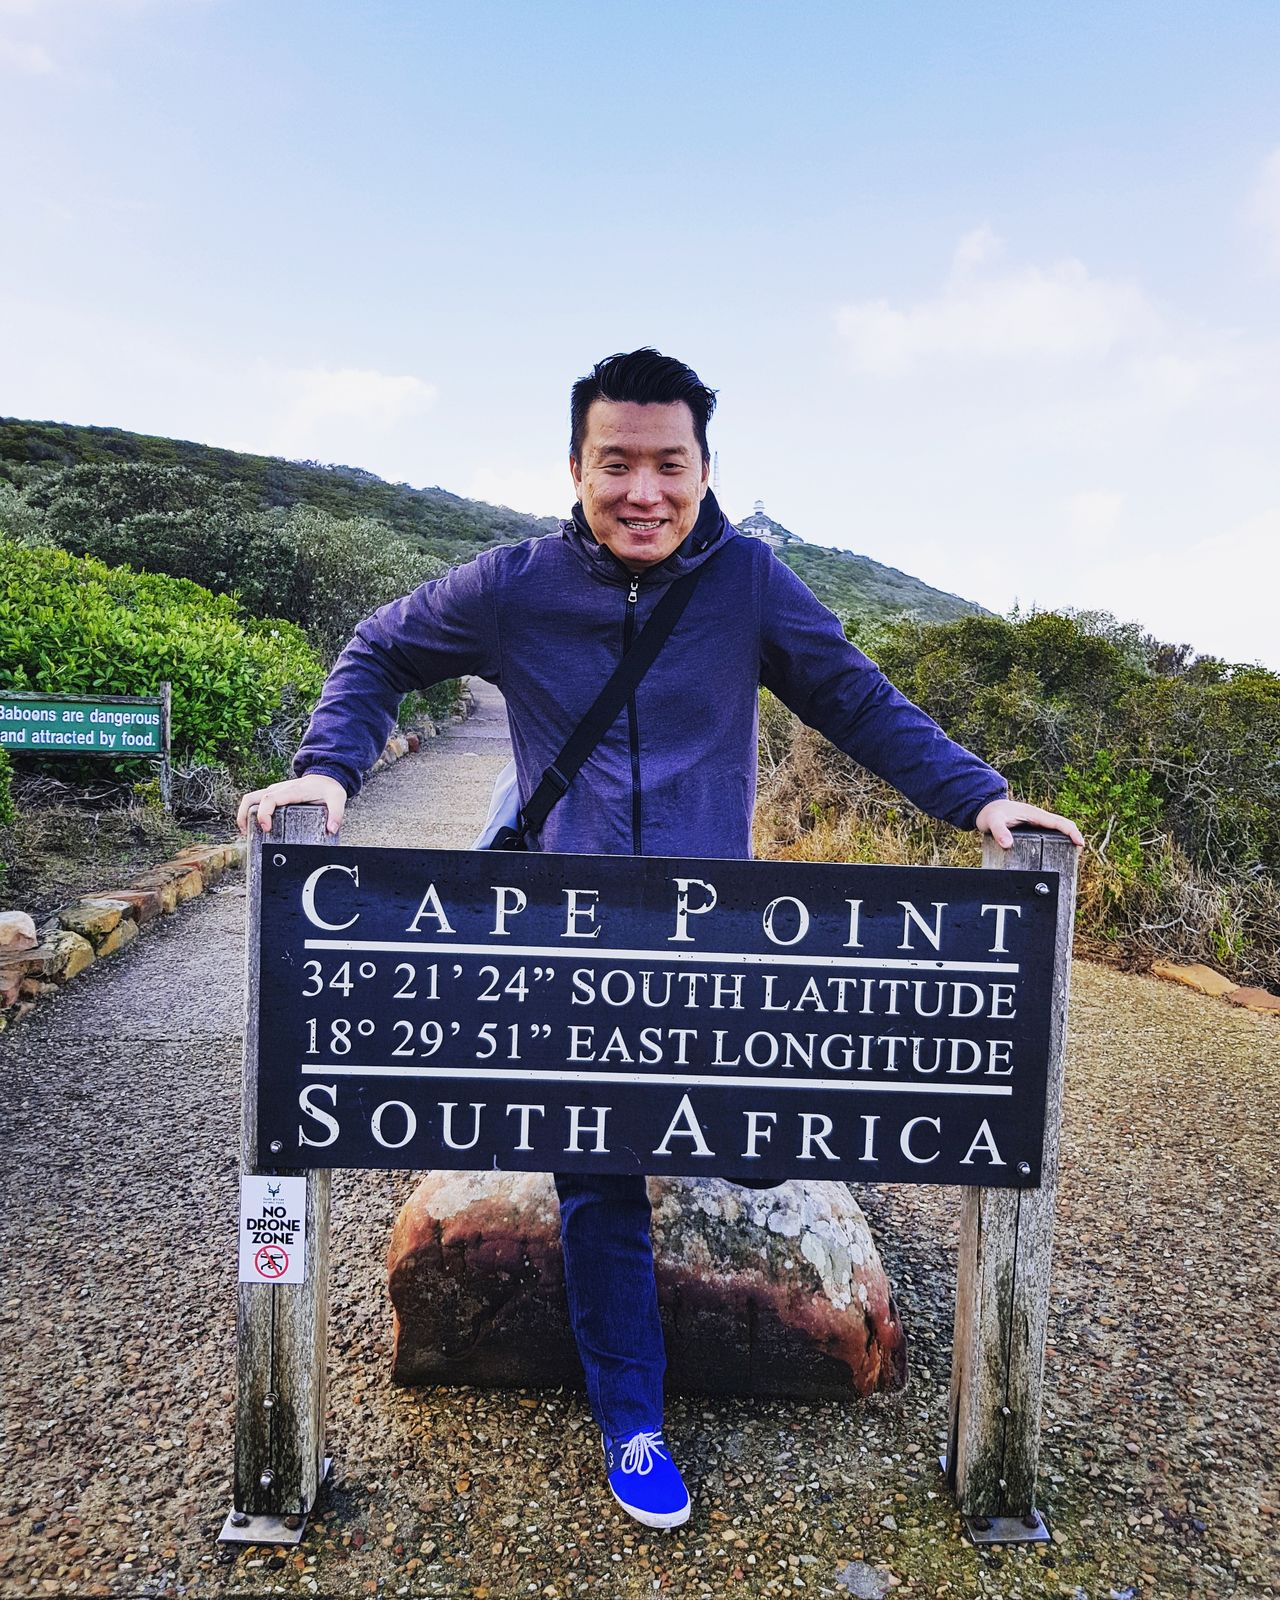 One Man Only Front View Sky Sea Holiday Nature Charles Southwestern Style Living Capetownmylove Live For The Story Capeofpoint Cape Town, South Africa Lovephotography  Photography Cape Town Beauty Niceweather Cape Town Travelling Cape Point Samsungs8camera SamsungS8Plus Capetownphotographer Lovephotography  Relaxing Day South Africa